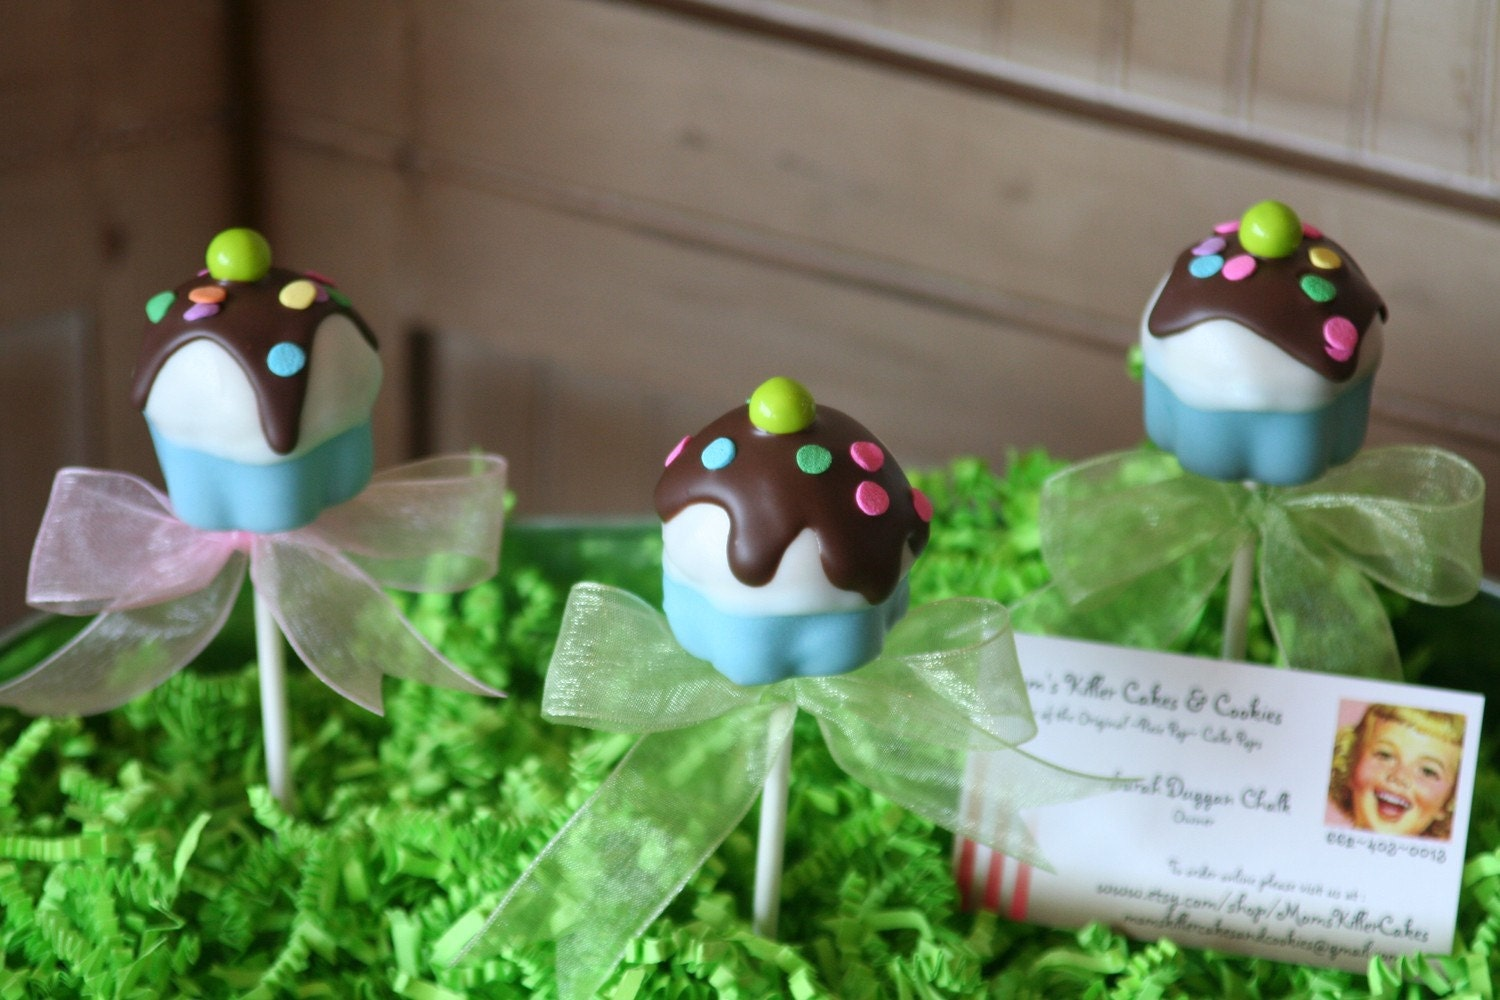 Mom's Killer Cakes & Cookies Original  Design Cupcake Sundae Cake Pops